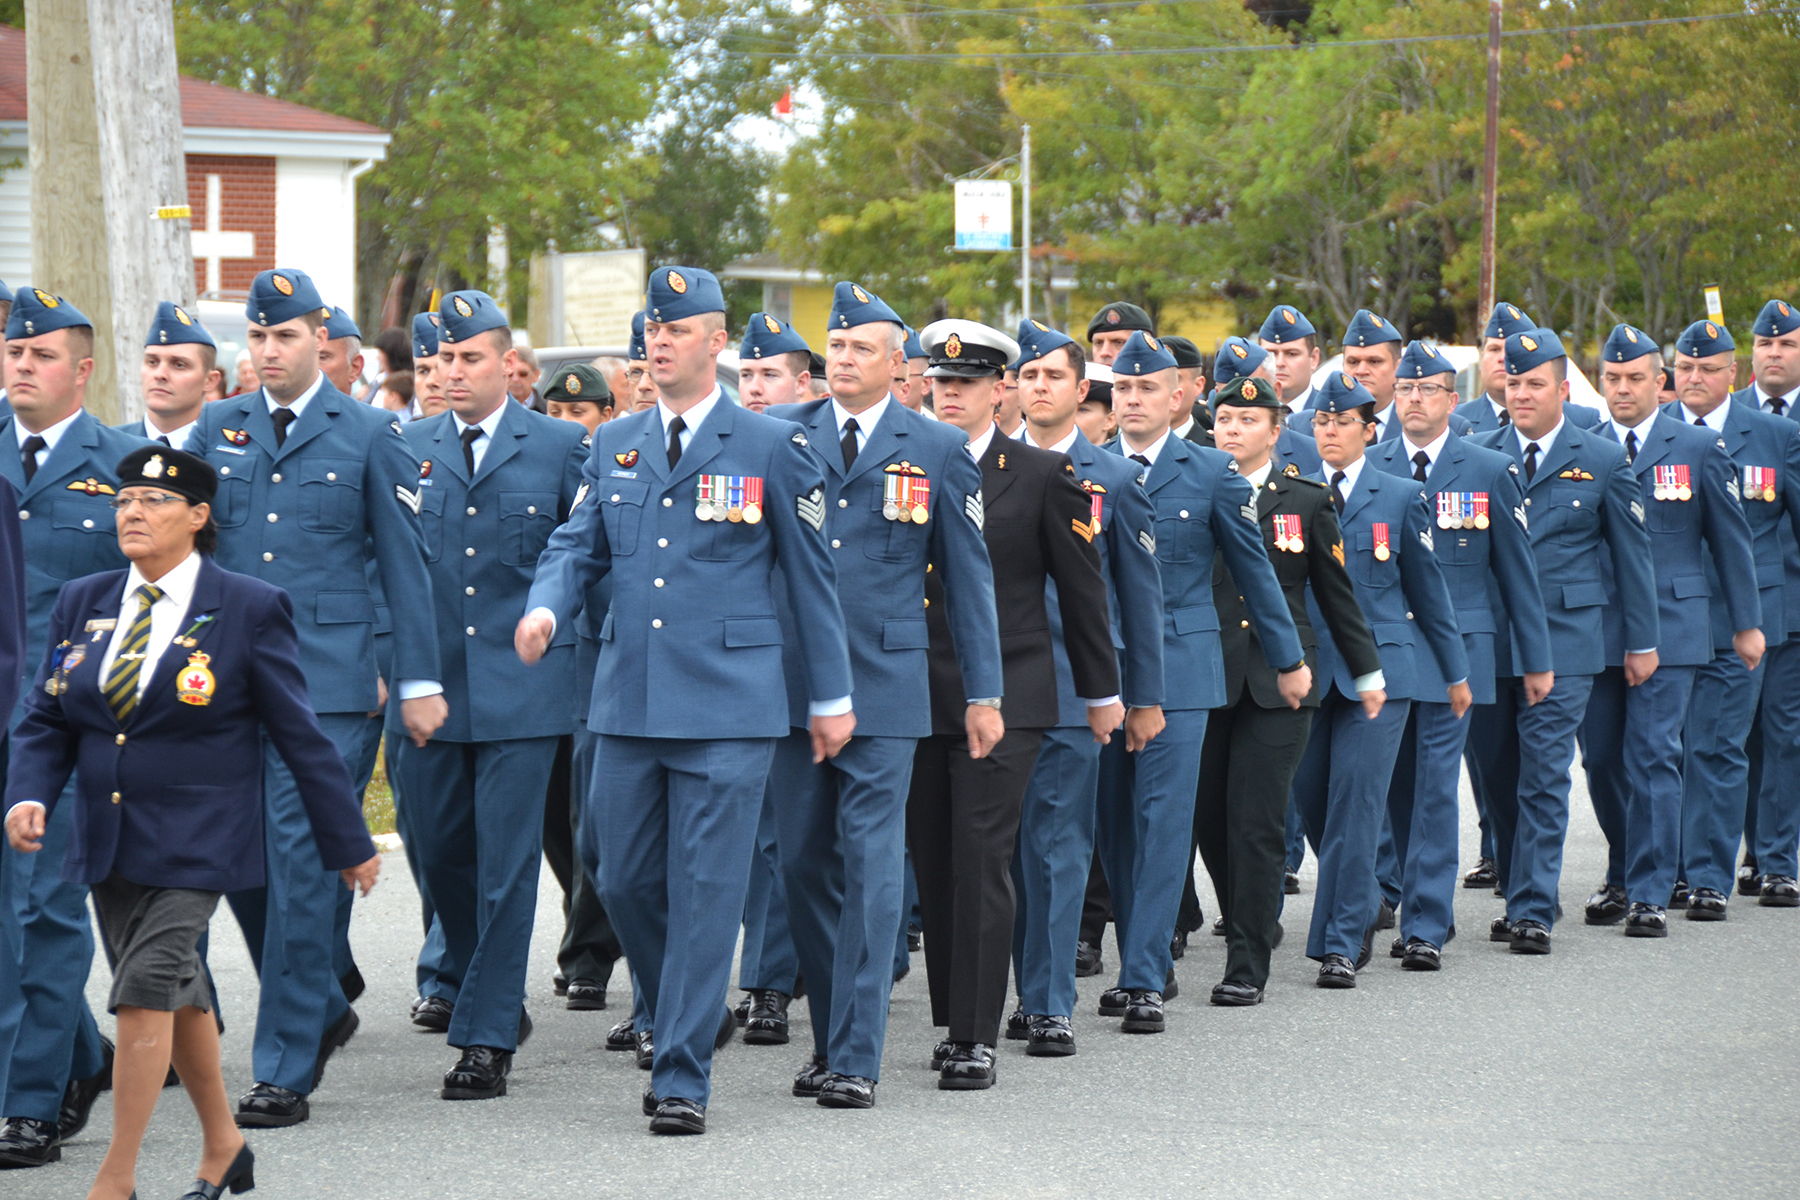 Members of 9 Wing Gander, Newfoundland and Labrador, march through the streets as part of the 76th Anniversary of the Battle of Britain Ceremony held on September 18, 2016, in Gander. PHOTO: Sergeant Carter MacLellon